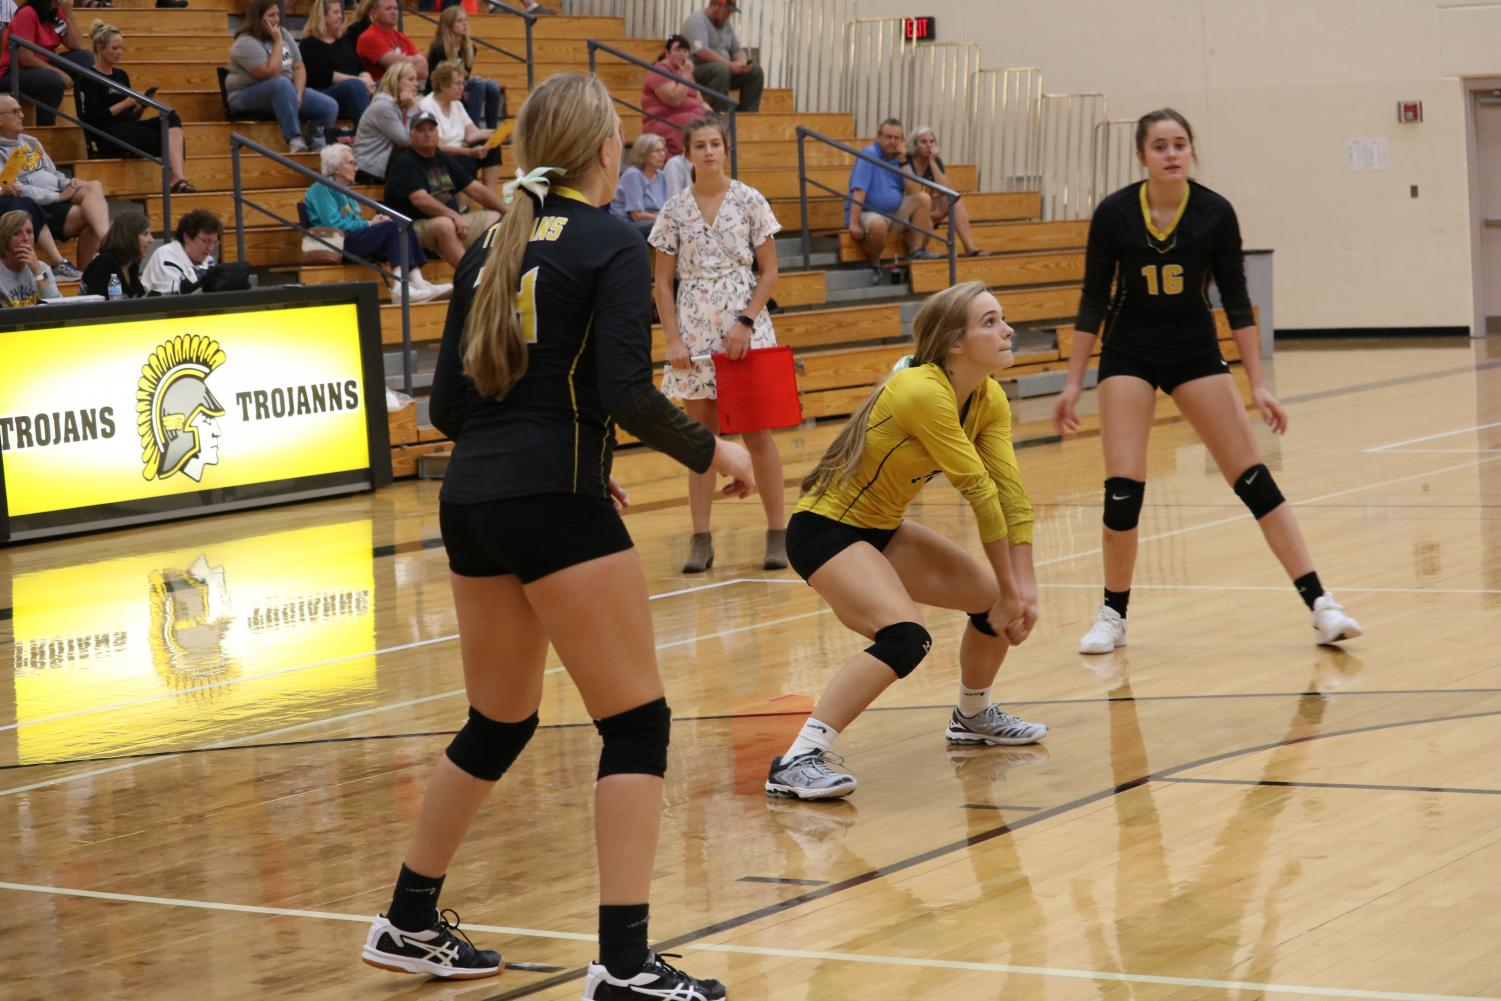 Junior Caroline Pellett digs the ball while fellow junior Maycie Waters and freshman Aubrey Guyer stand by. Pellett is third on the team in the dig category.